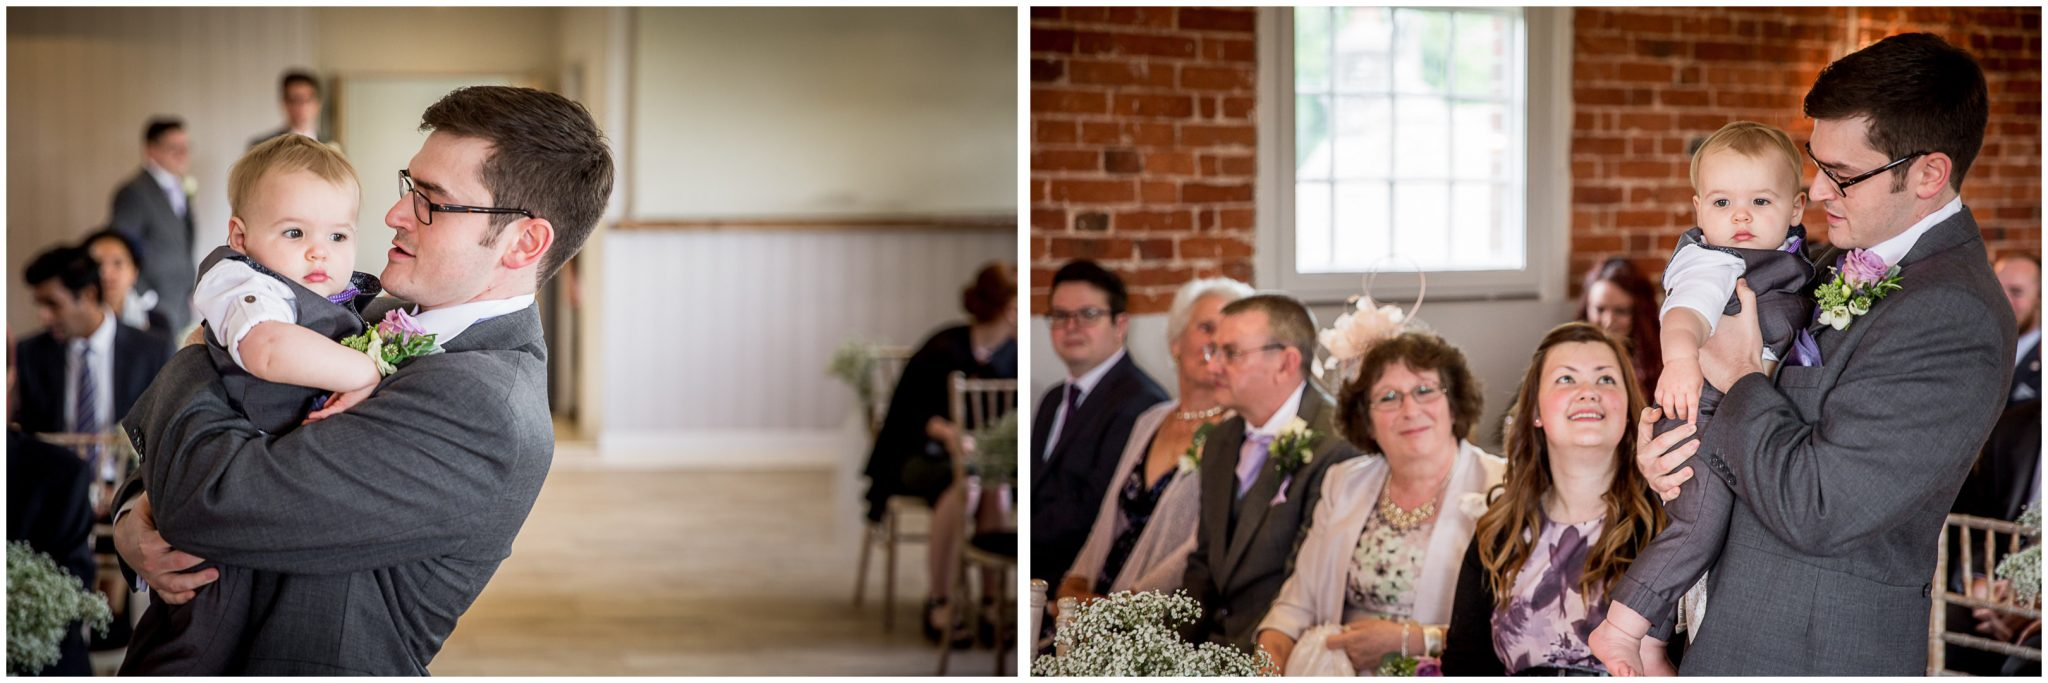 Sopley Mill wedding photography groom with tiny little page boy